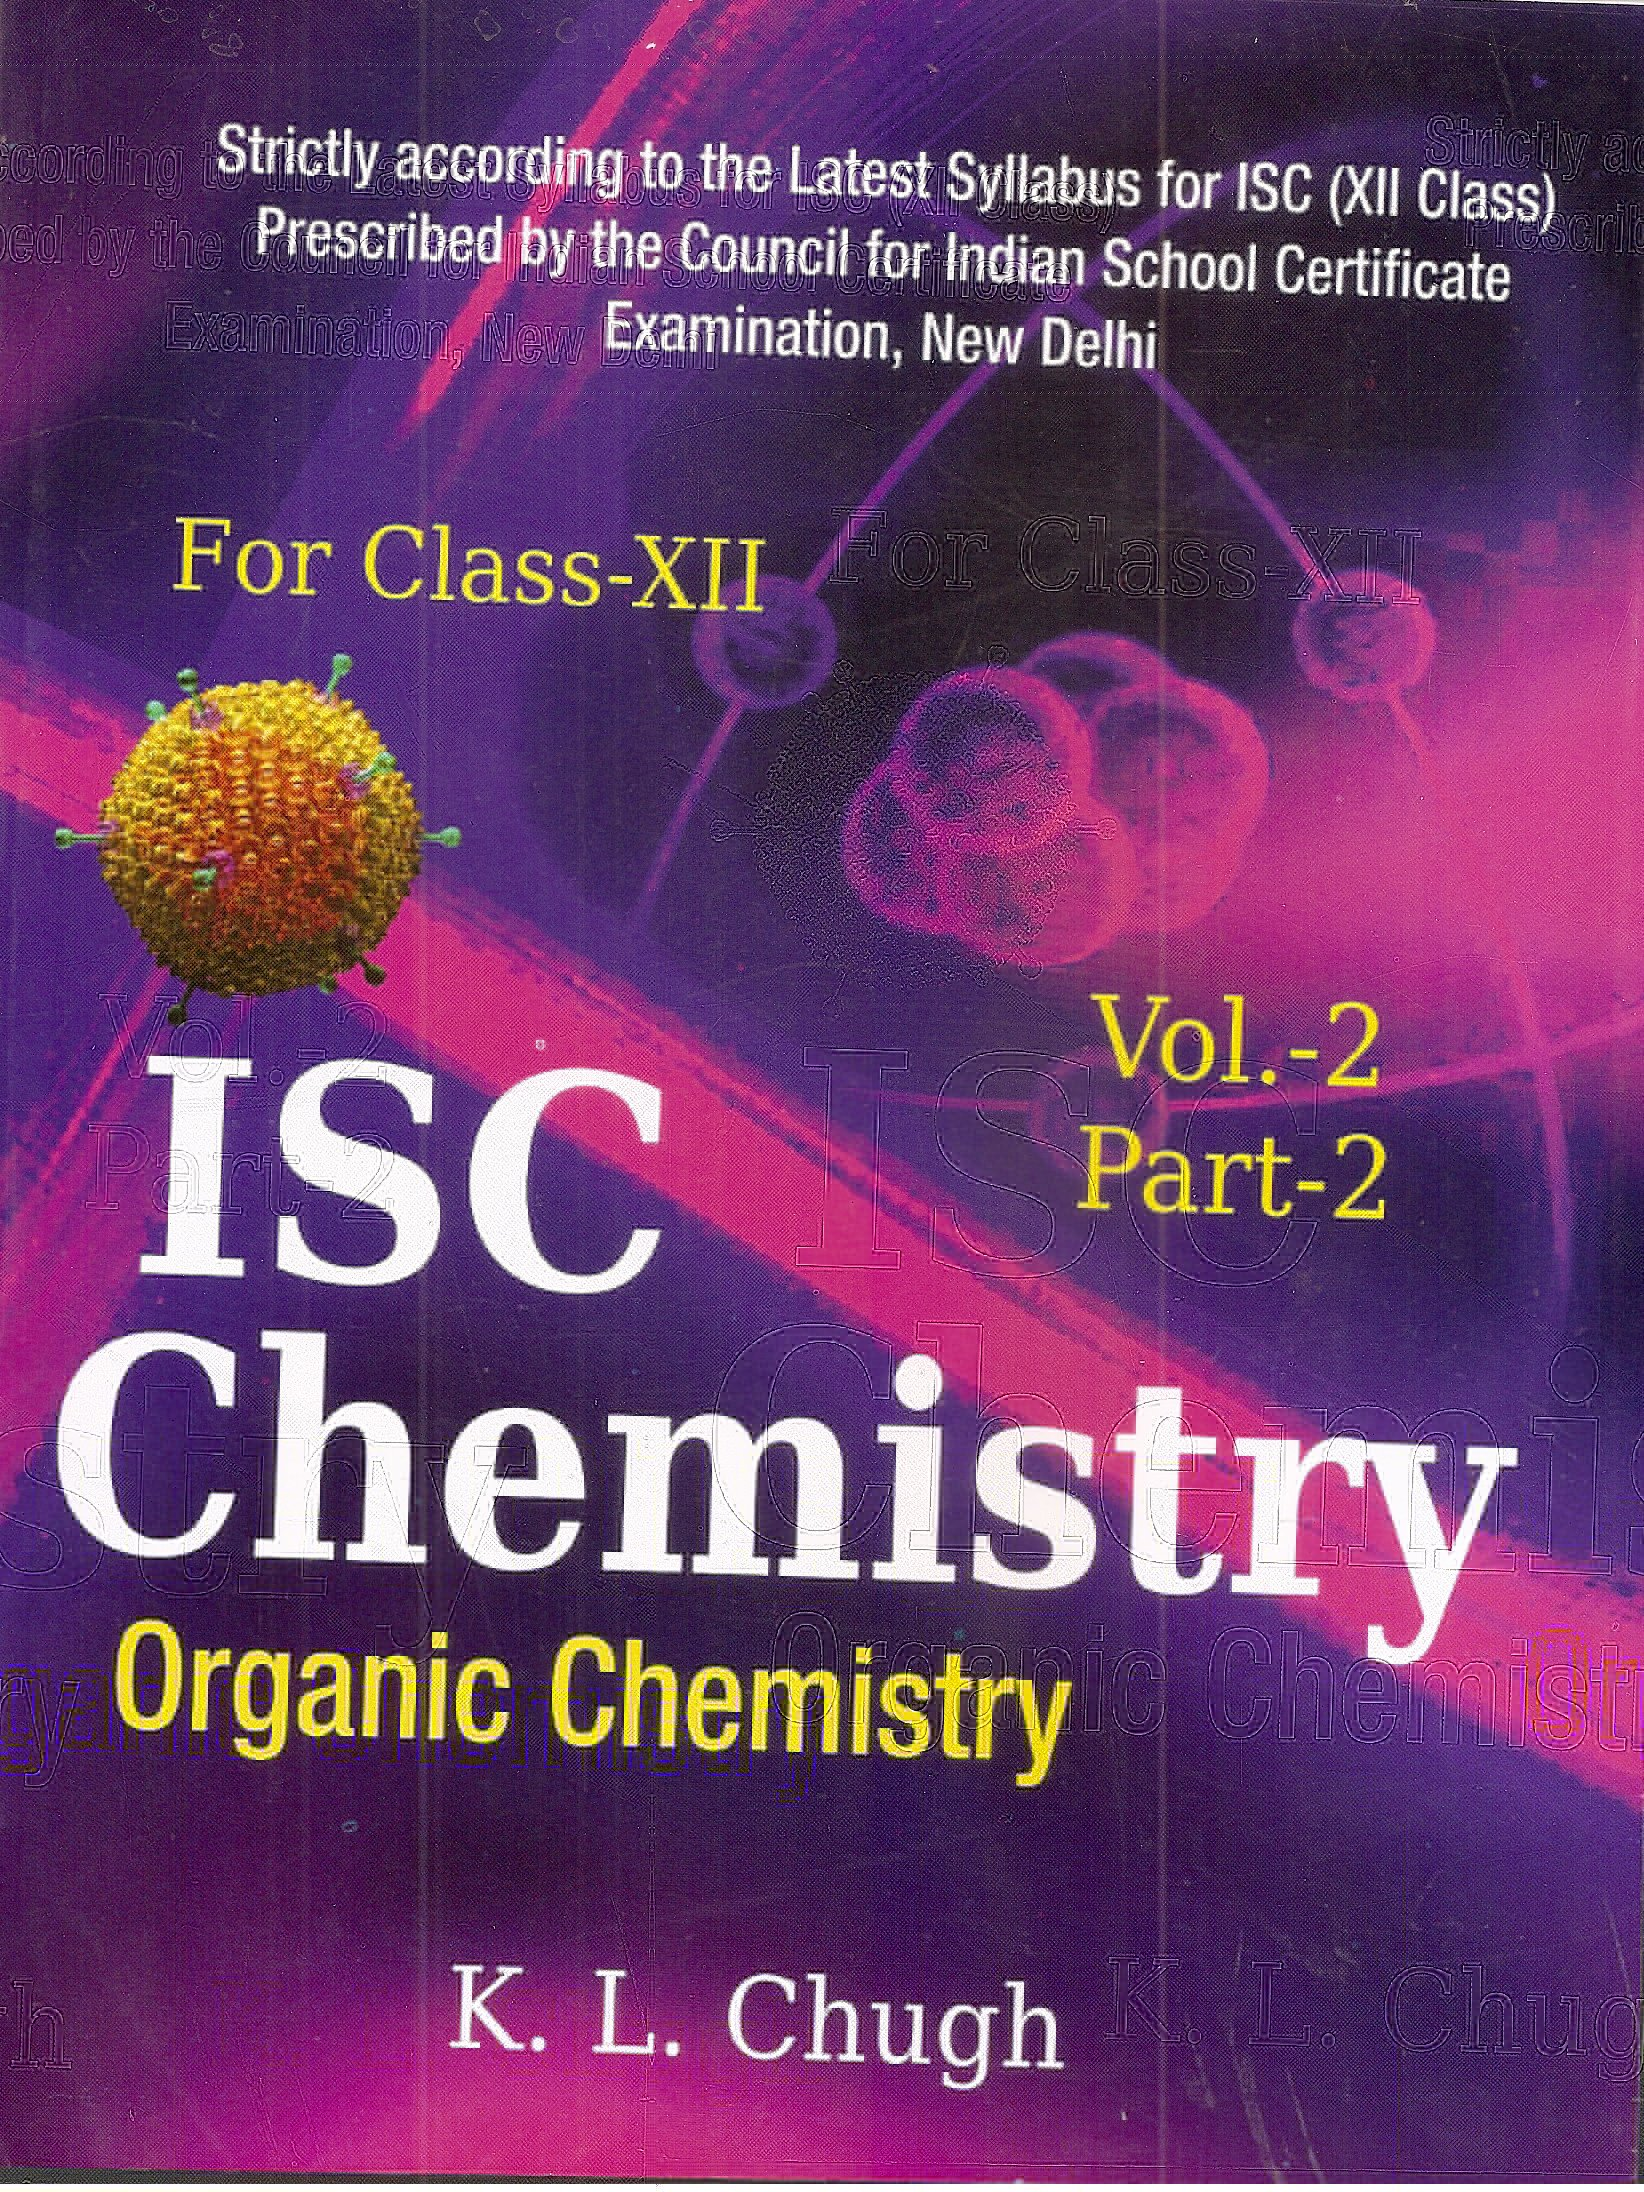 Poster design class 12 - 2 Class 12 Book Online At Low Prices In India Isc Chemistry Organic Chemistry Part 2 Vol 2 Class 12 Reviews Ratings Amazon In